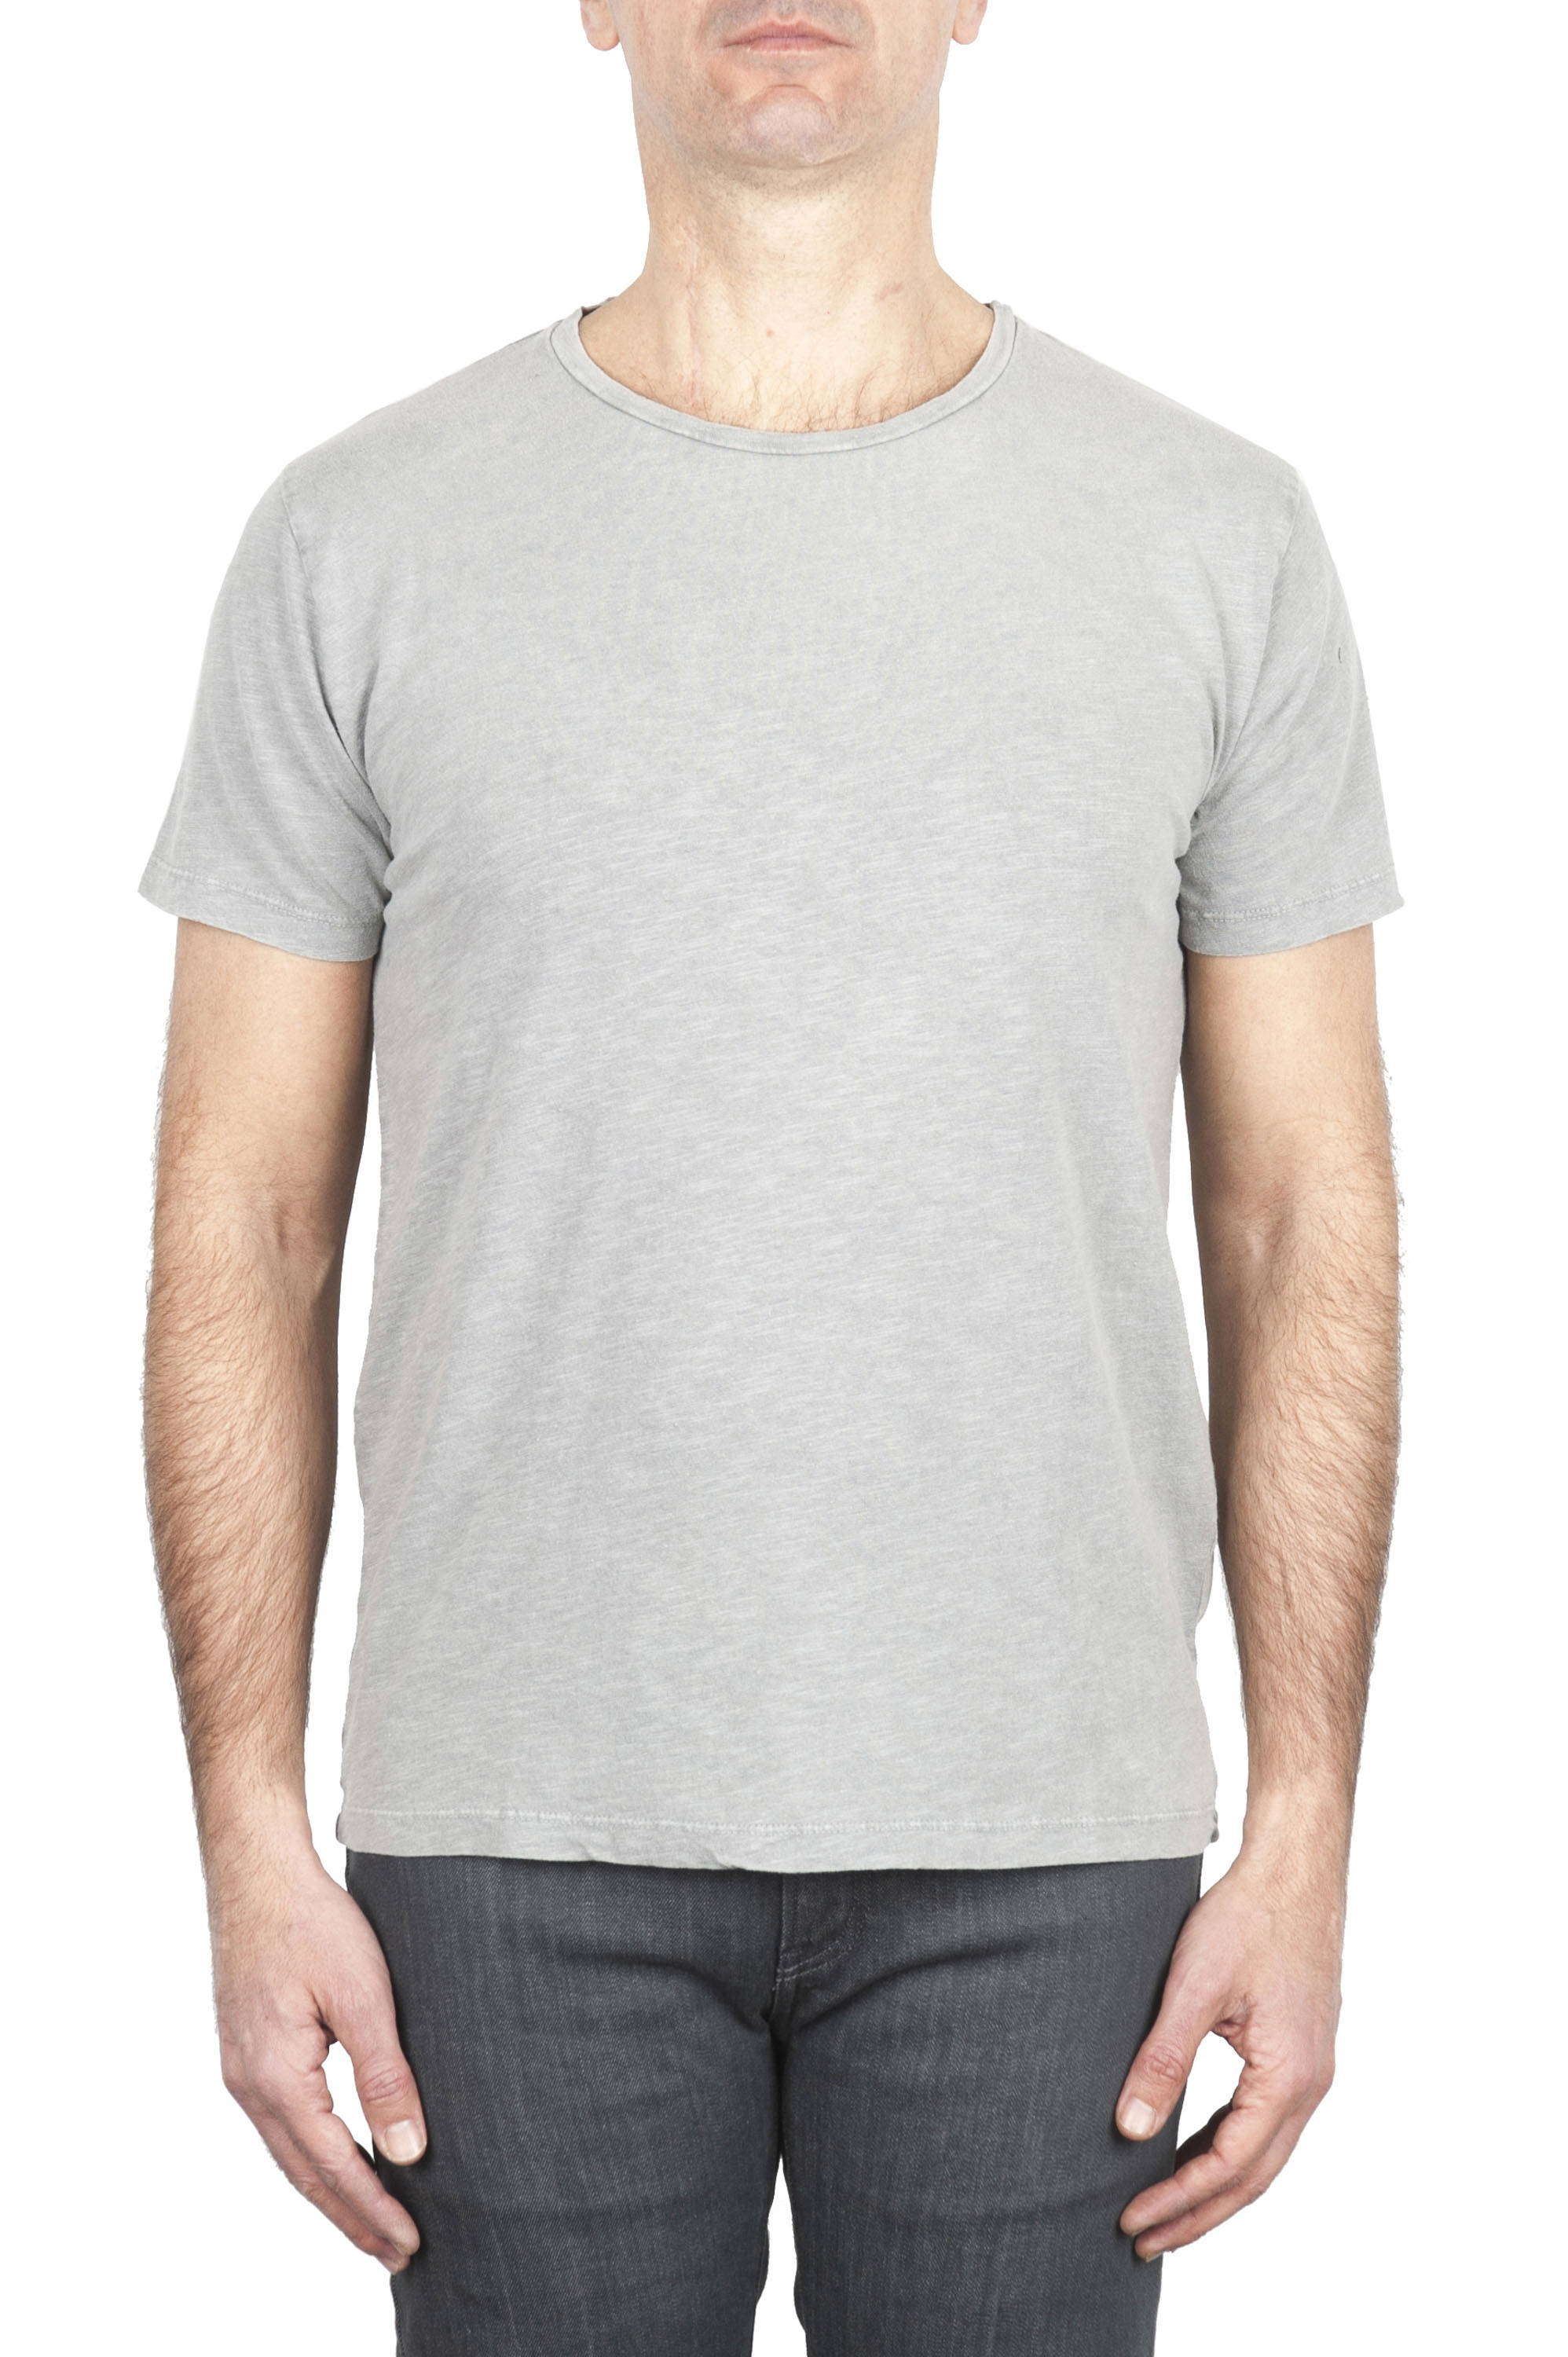 SBU 03310_2021SS Flamed cotton scoop neck t-shirt pearl grey 01